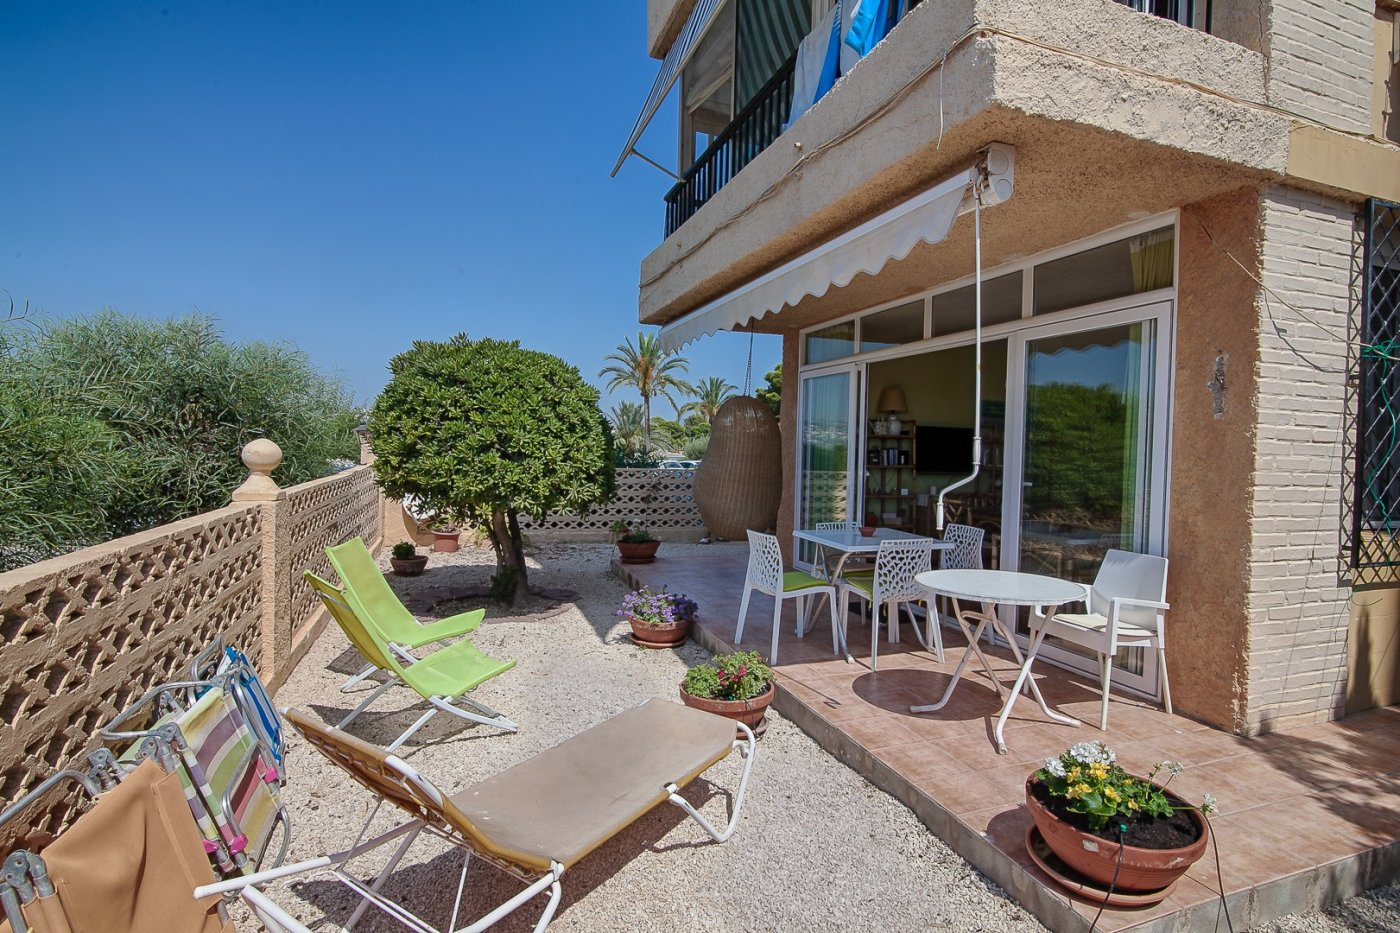 3 Bedroom Apartment in El Portet